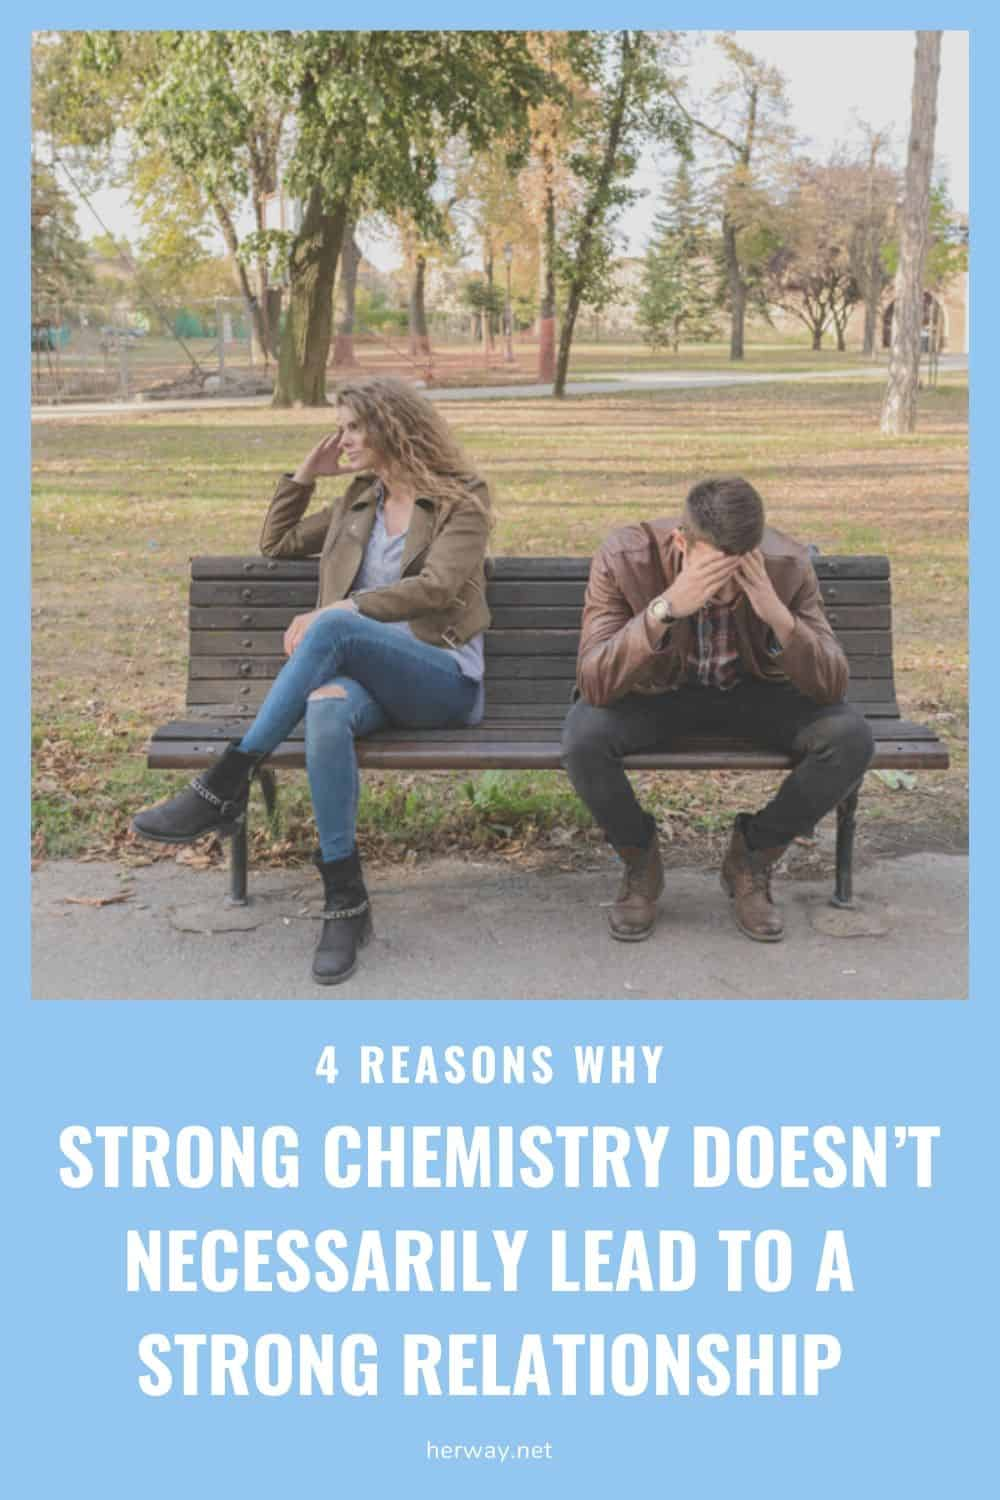 4 Reasons Why Strong Chemistry Doesn't Necessarily Lead To A Strong Relationship